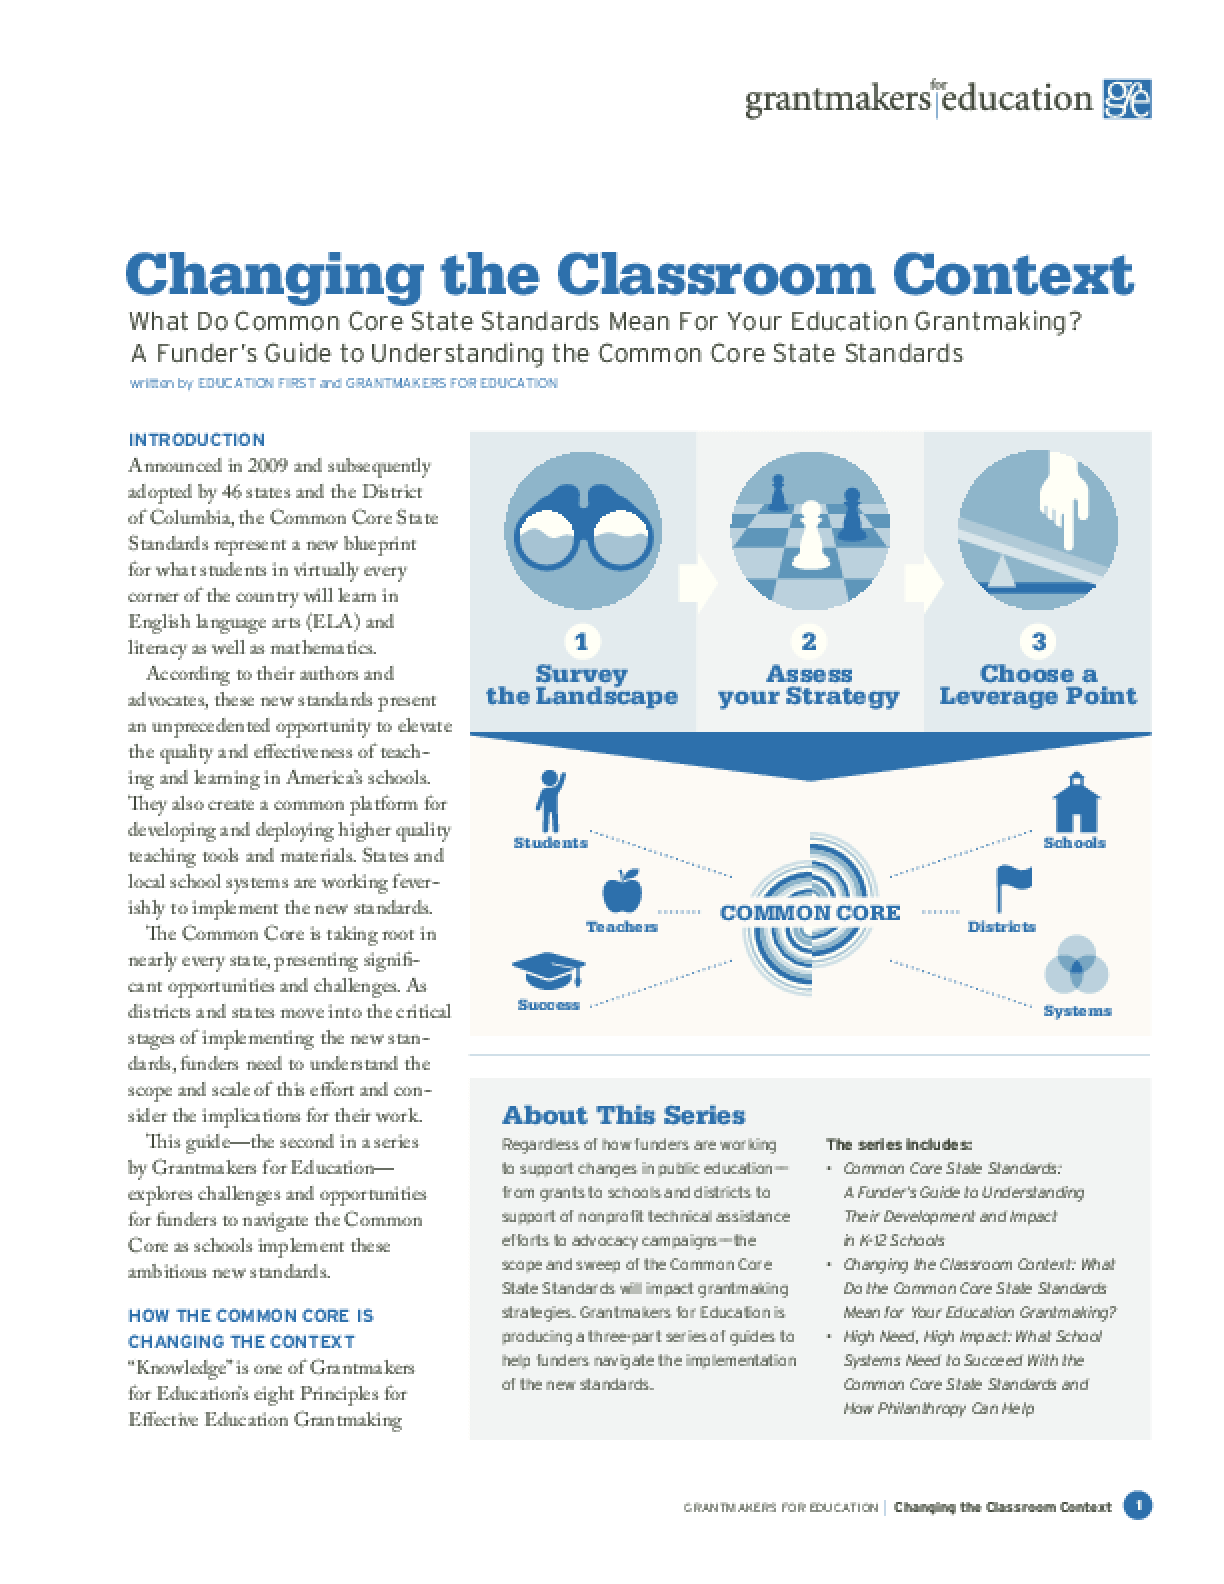 Changing the Classroom Context: What Do Common Core State Standards Mean for Your Education Grantmaking? a Funder's Guide to Understanding the Common Core State Standards